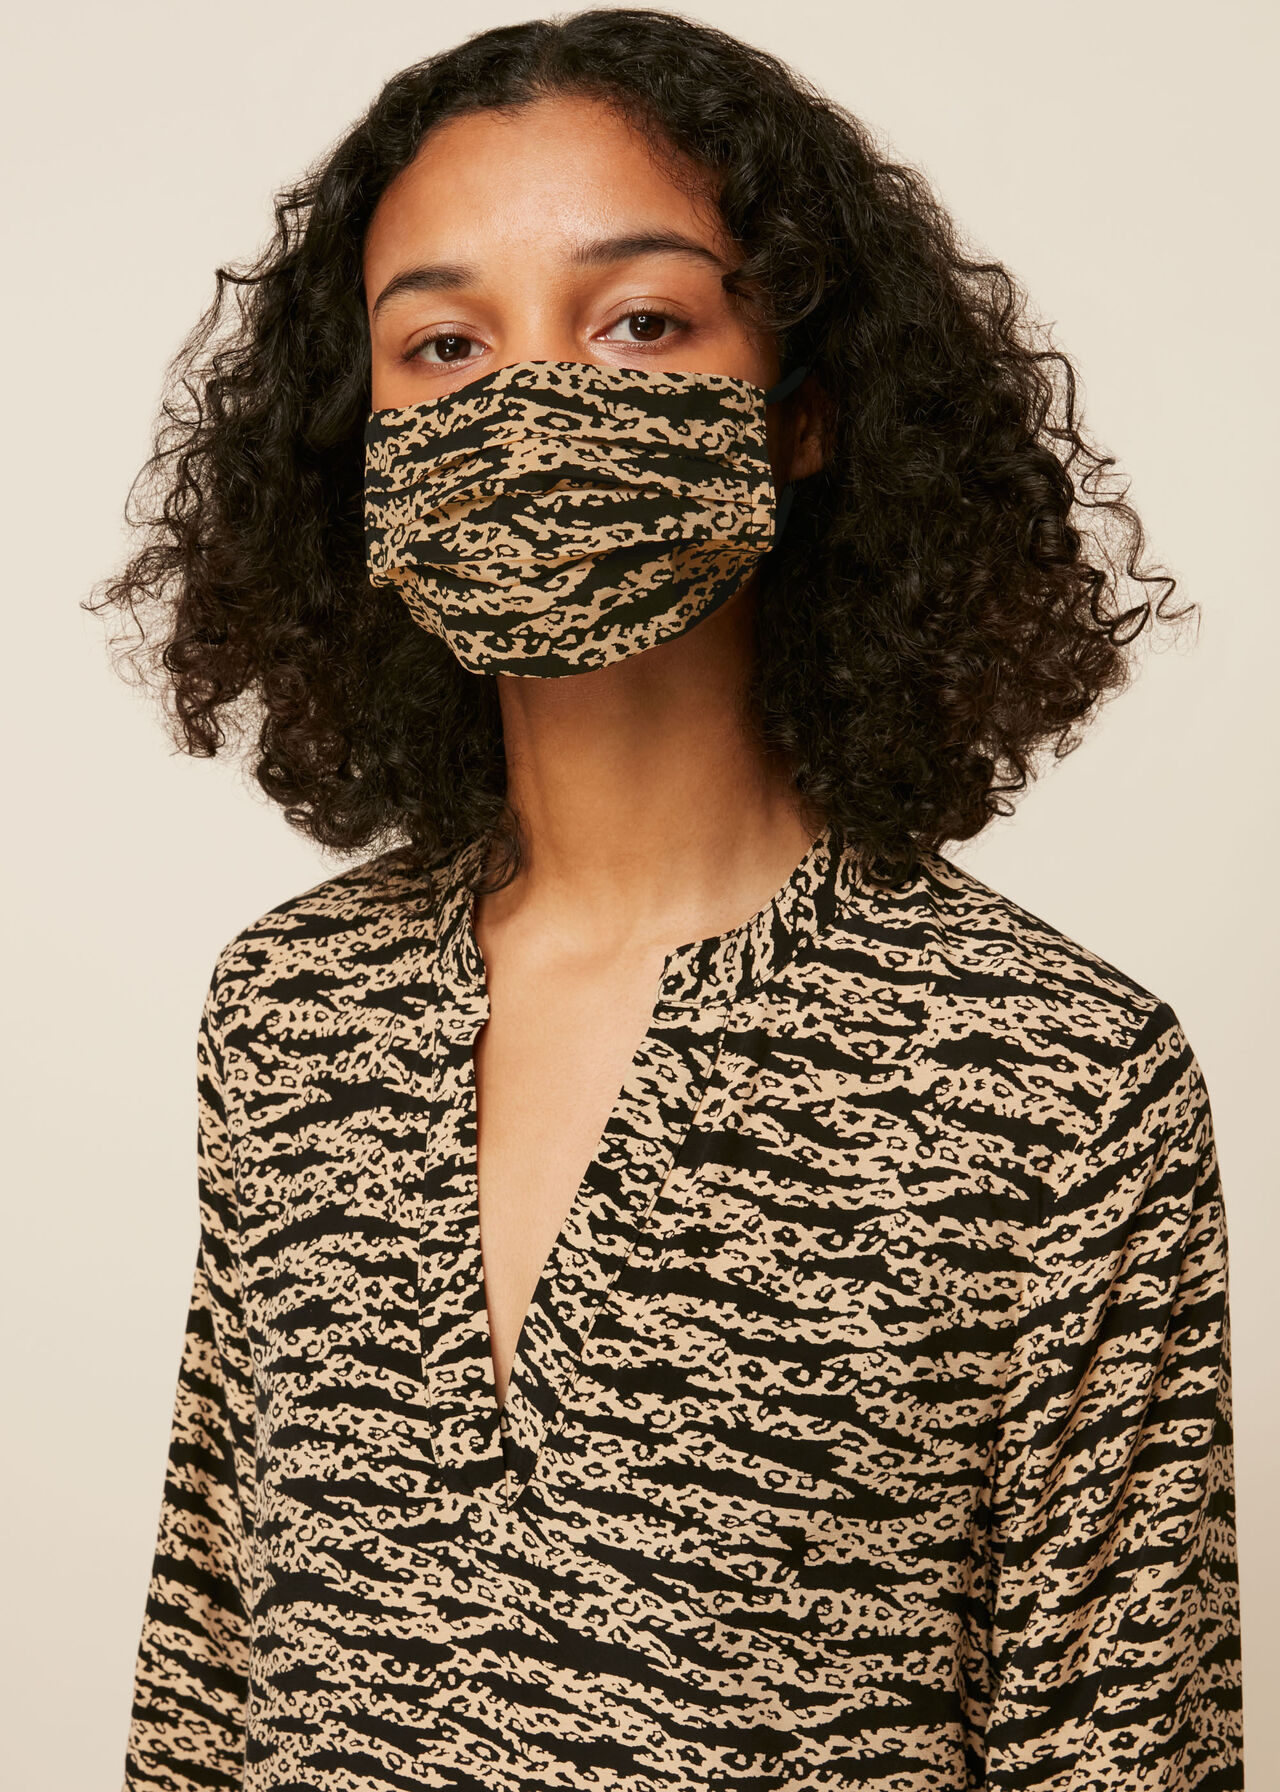 Tiger Leopard Face Covering